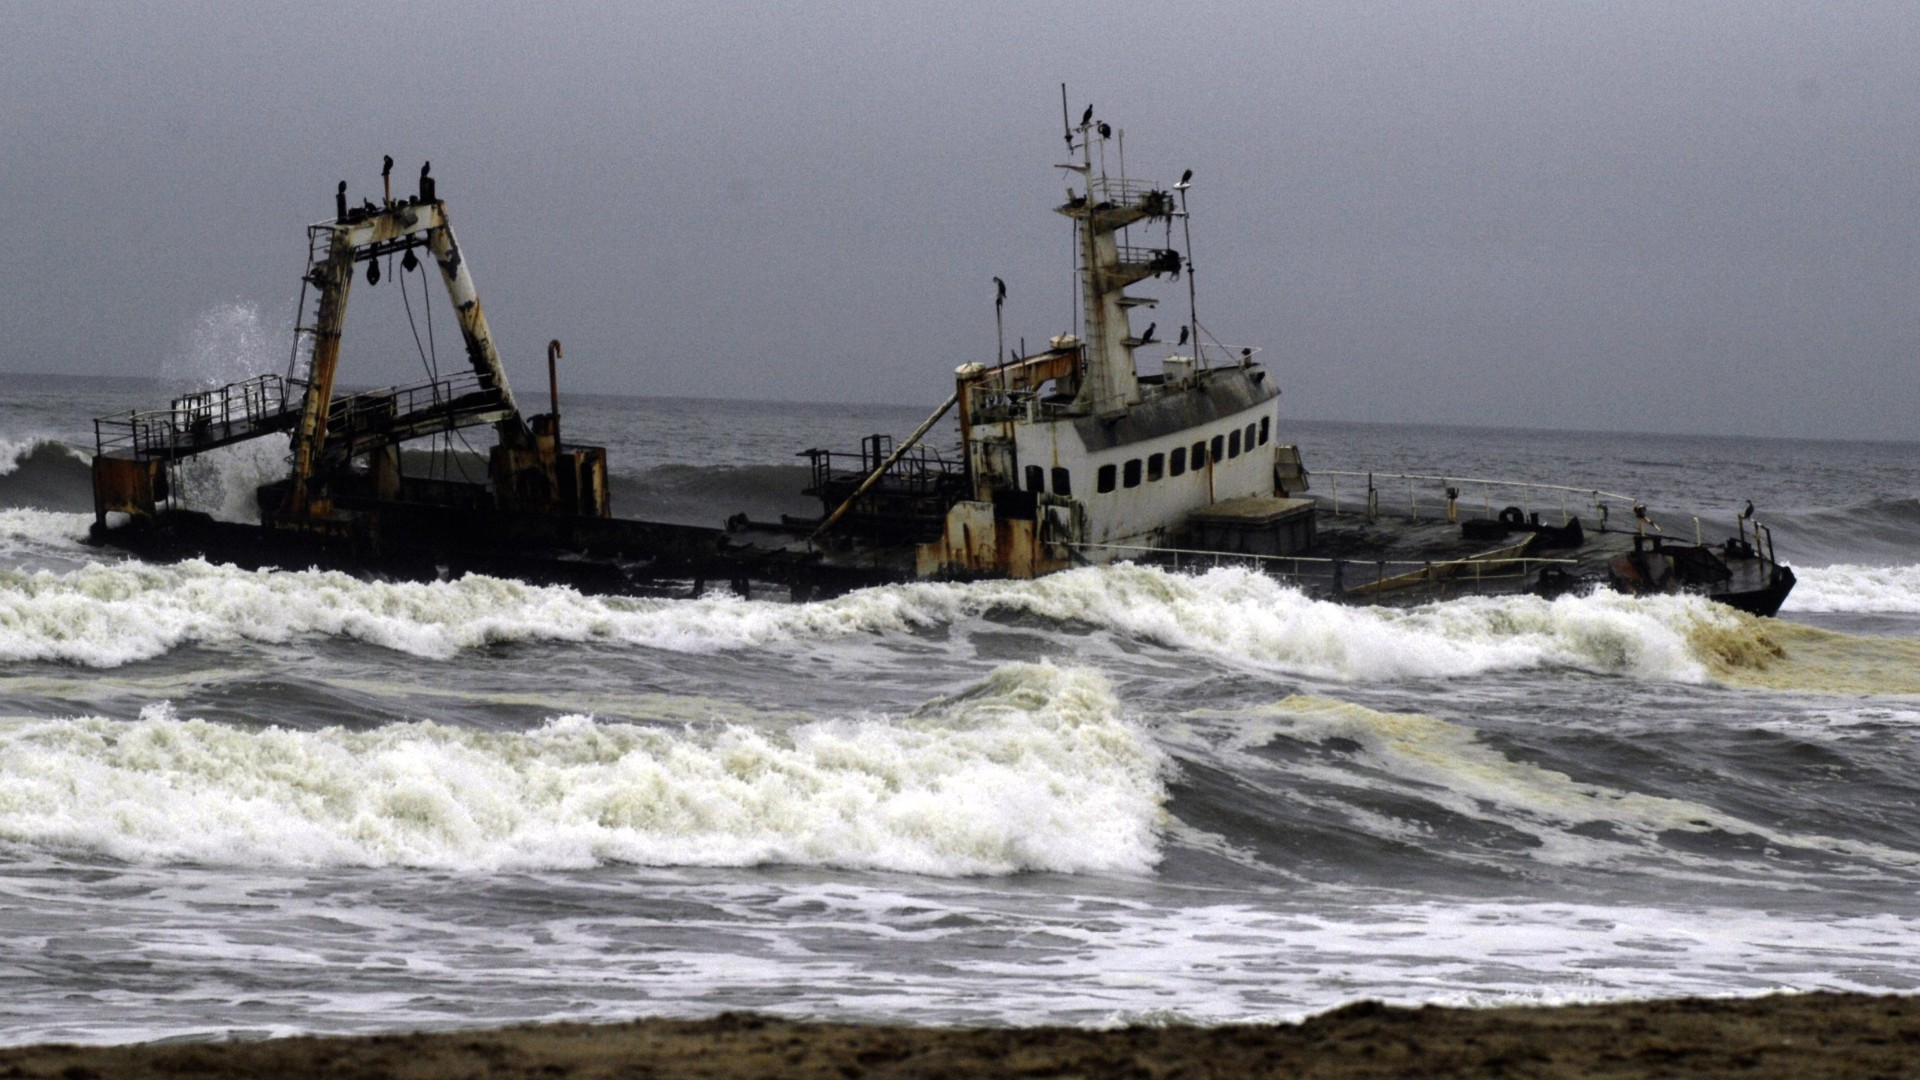 Wrecked fishing trawler